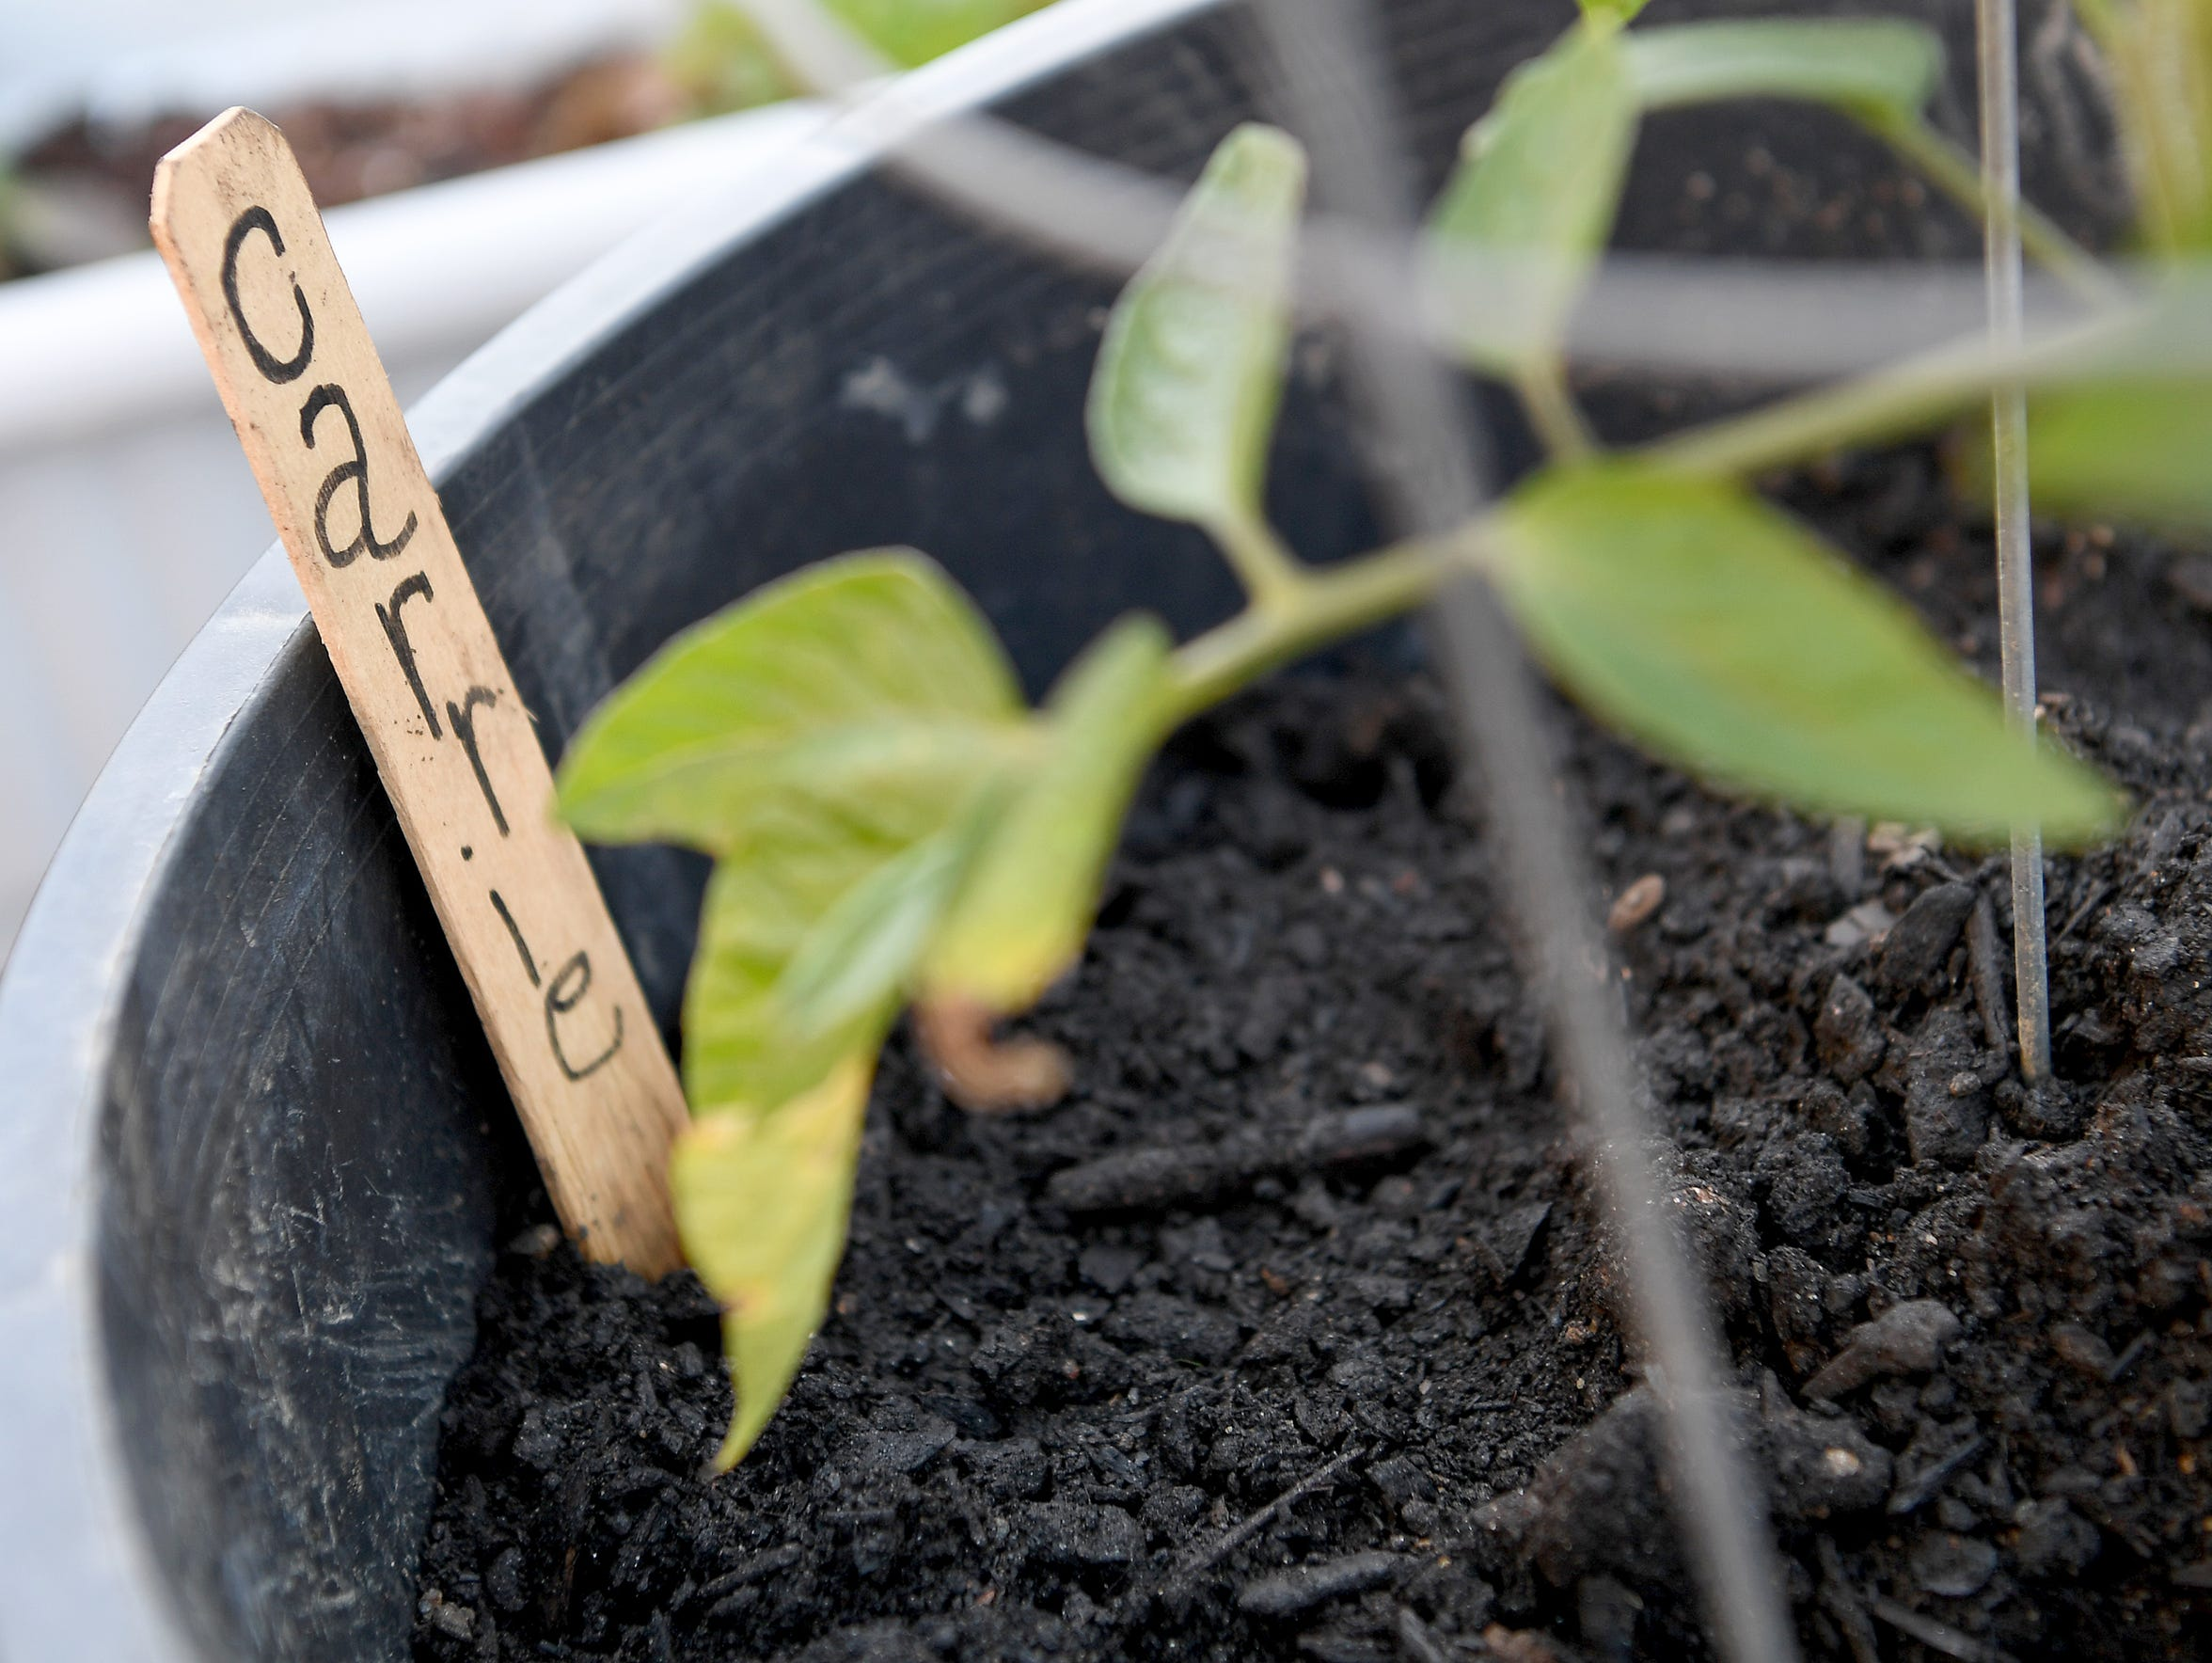 A wooden stick indicates that a pot with a tomato plant